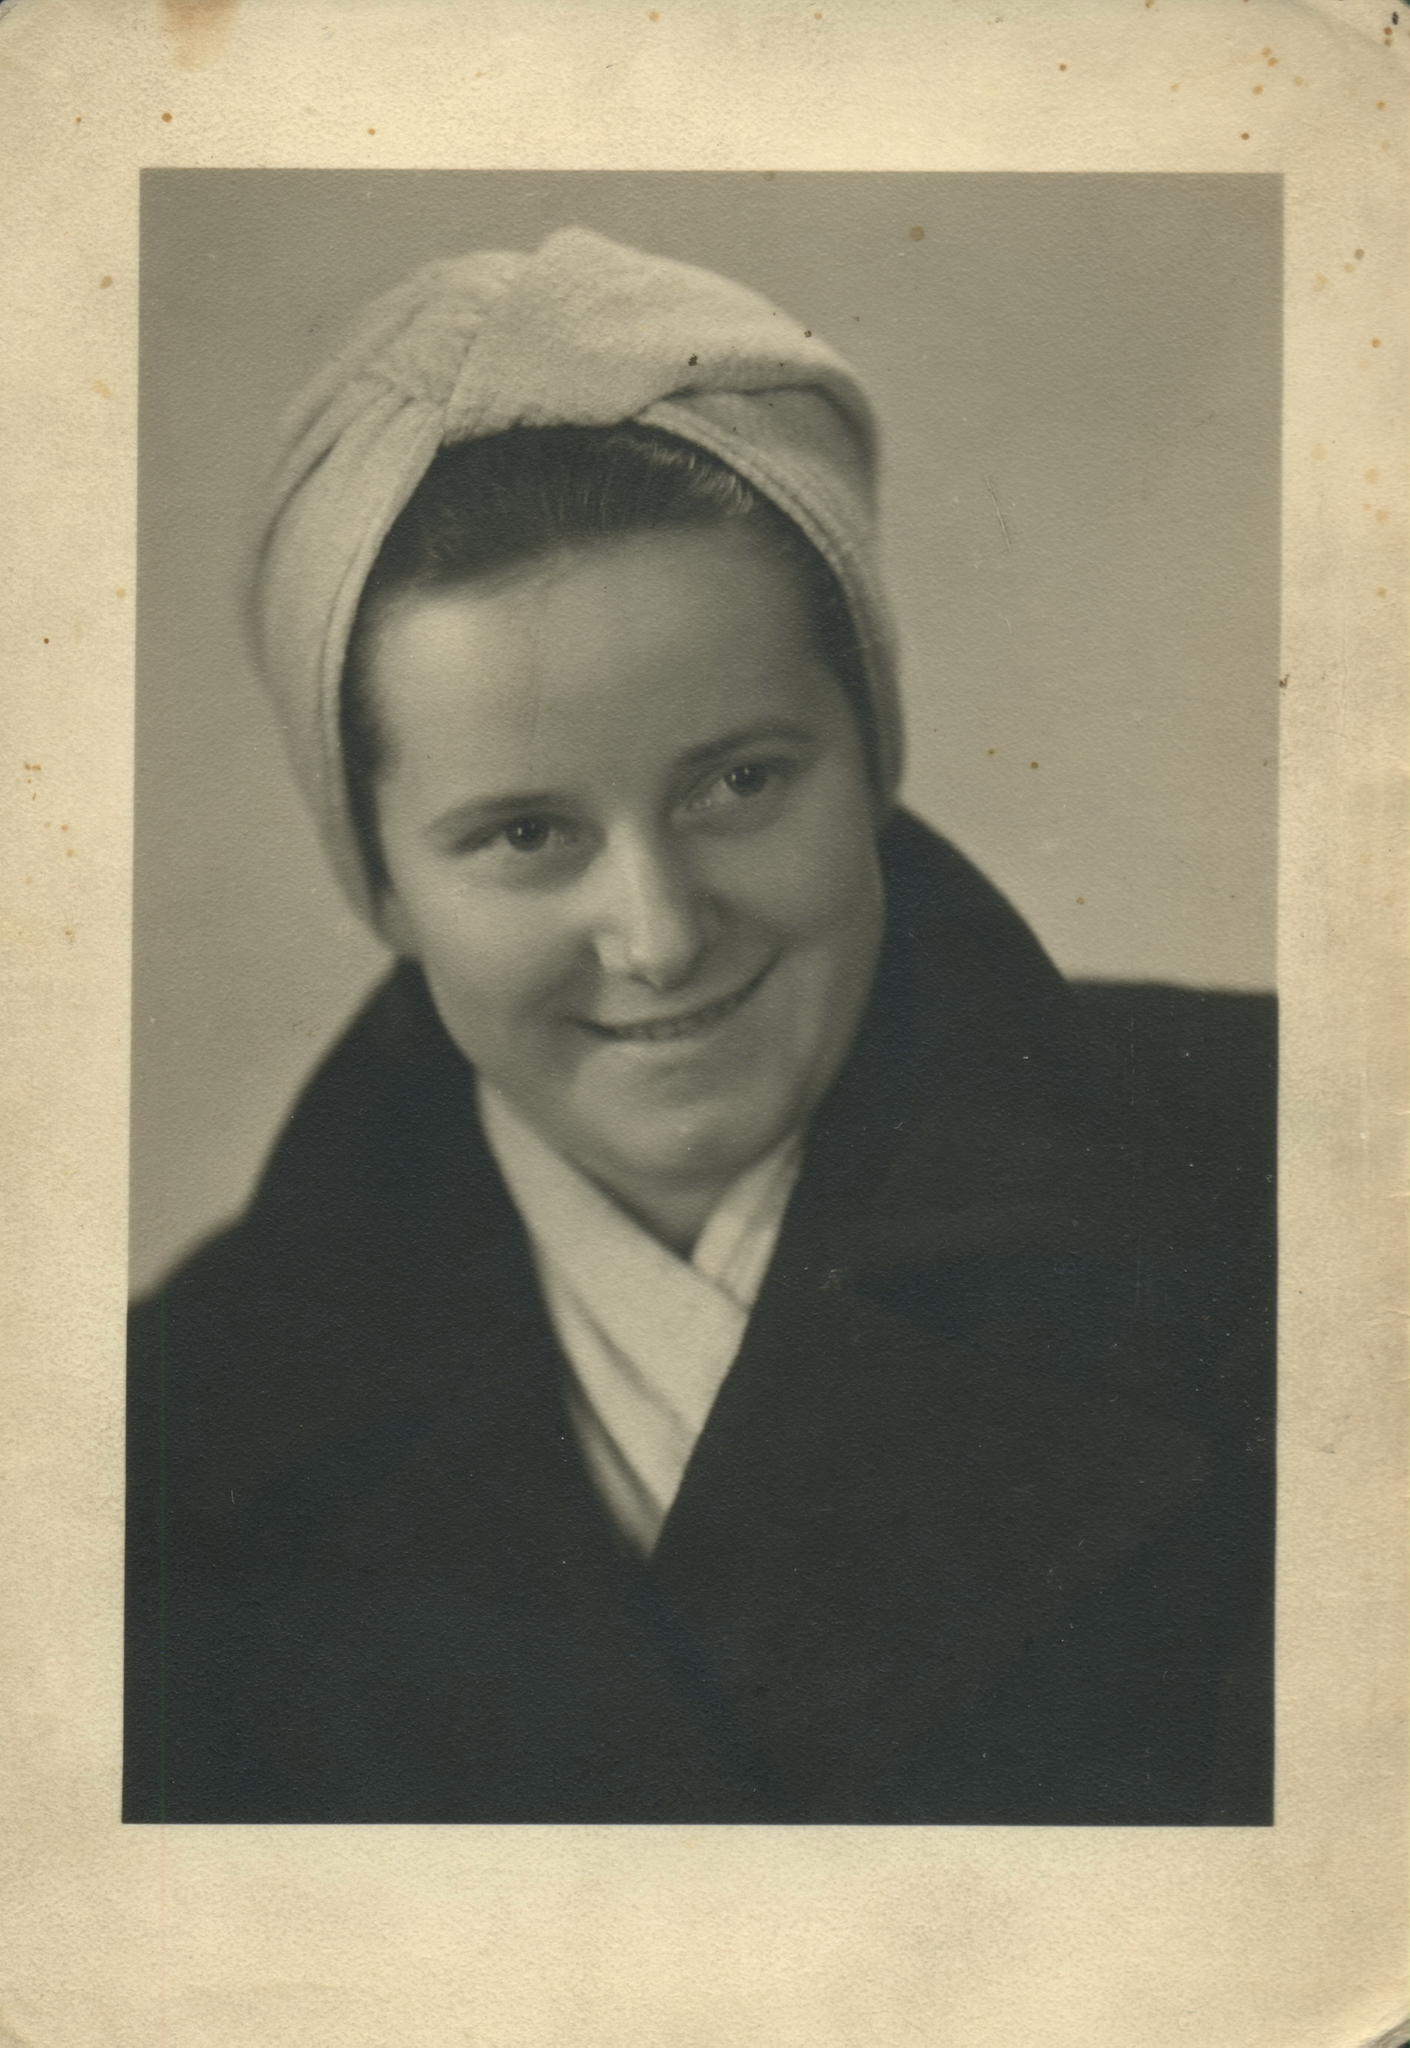 Stefania Maludzinska, photographed after the war. She helped POWs escape from the Schubin camp at risk to her own life. (Photo courtesy the Museum Szubinskiej im Zenona Erdmanna, Szubin, Poland)